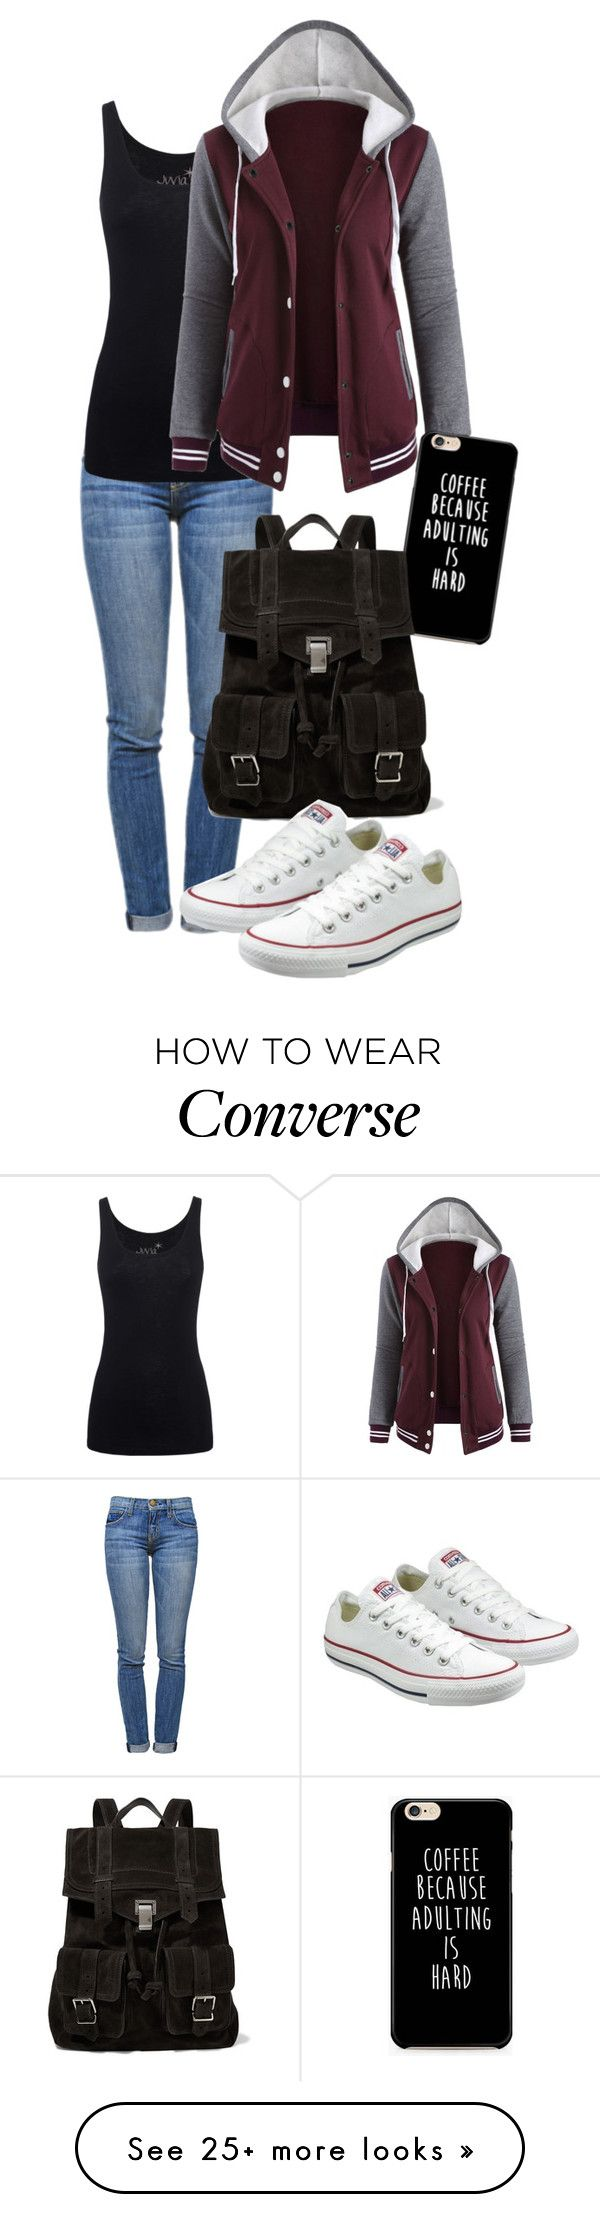 """school days"" by deliag on Polyvore featuring Current/Elliott, Juvia, Proenza Schouler and Converse"